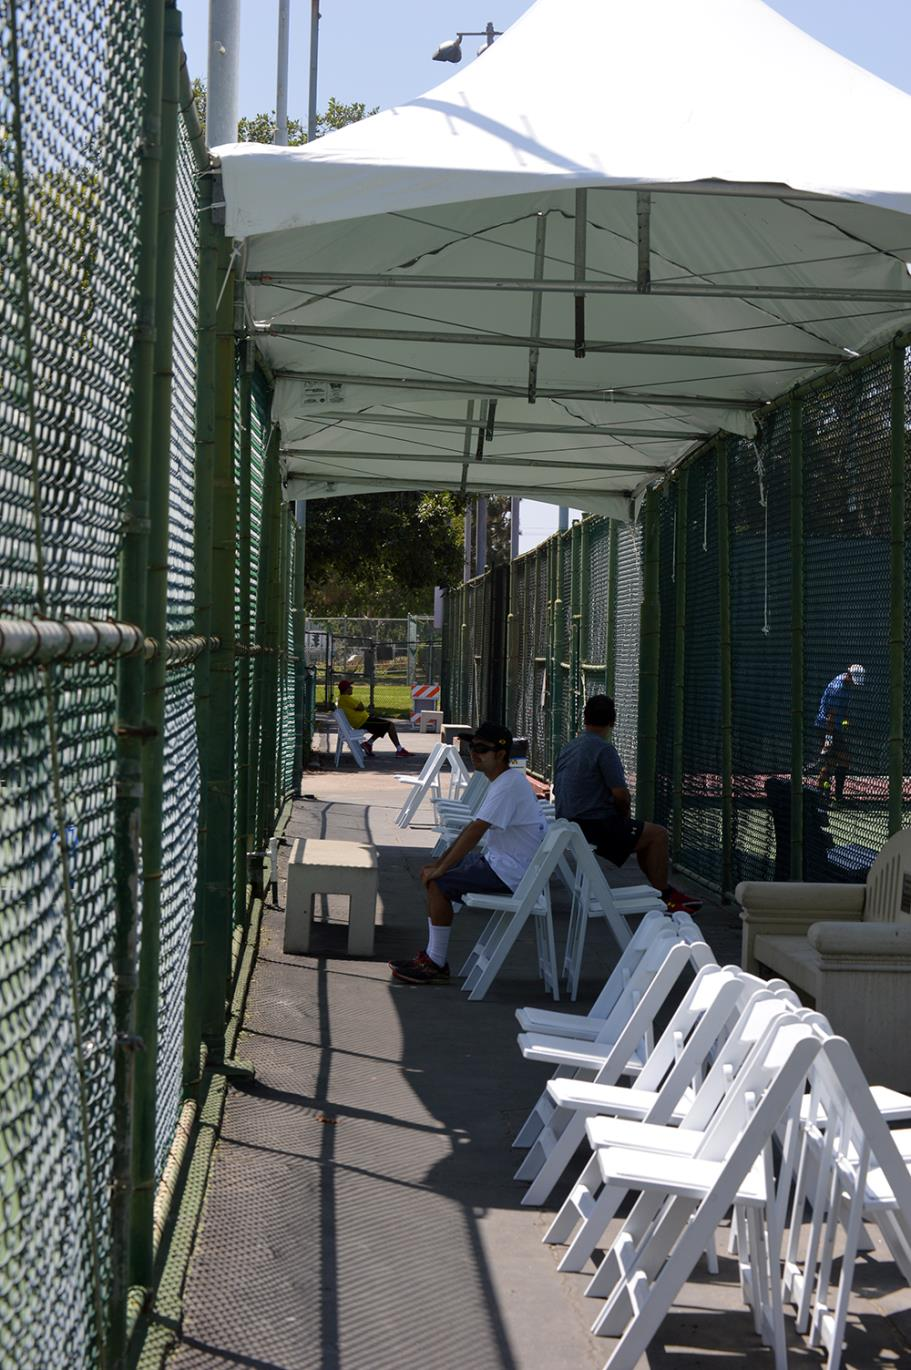 Covered seating to watch the action at at Live Oak Park Tennis Courts